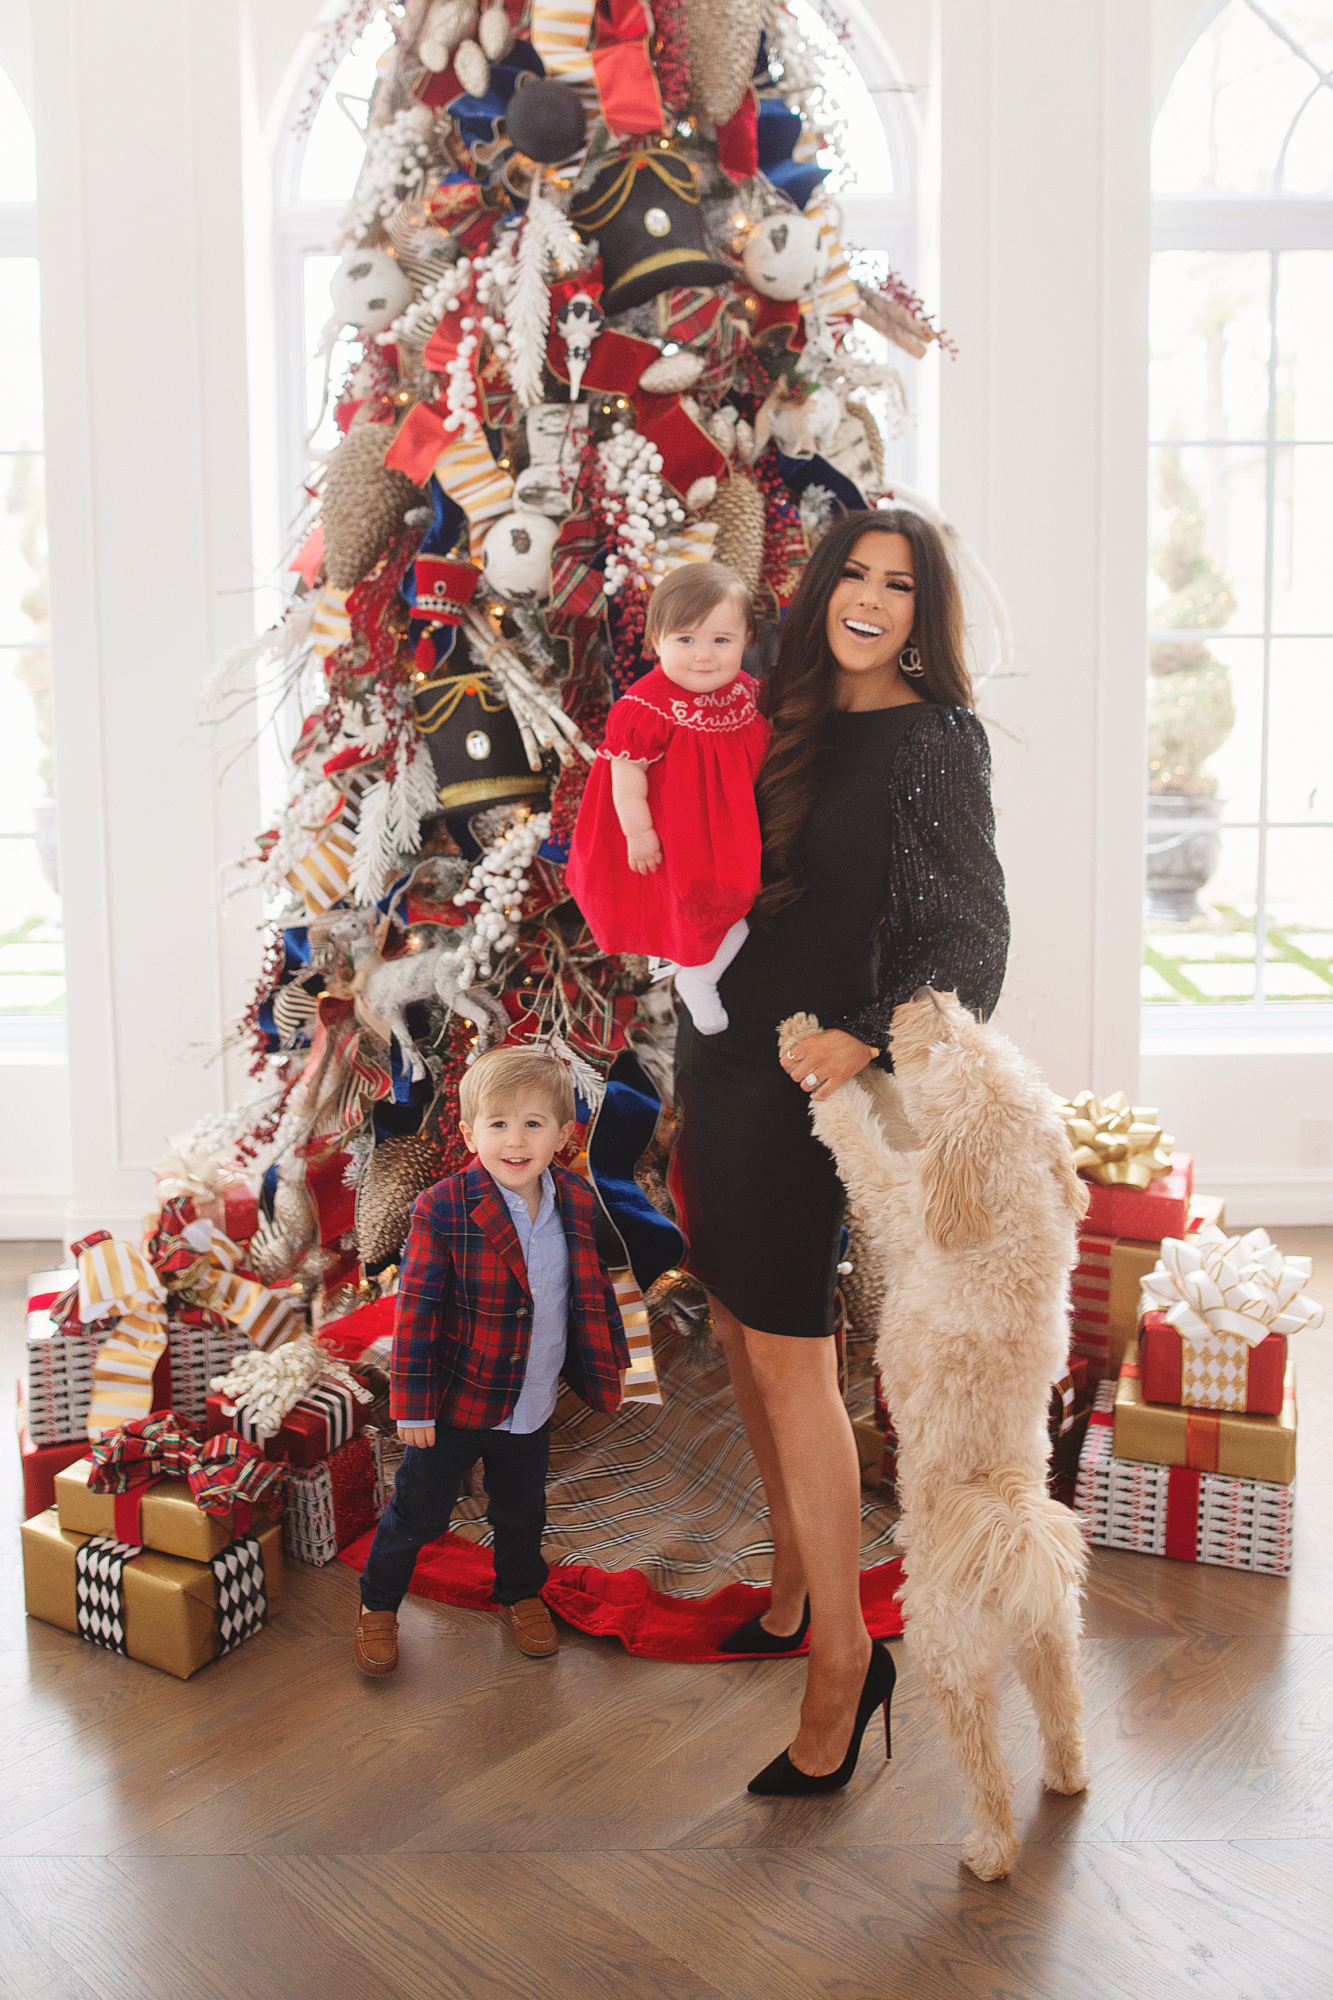 family Christmas card outfit inspiration, smocked Christmas dress baby, baby boy fashion Christmas, pinterest Christmas tree decor, shop hello holidays, Emily Gemma, the sweetest thing blog | Merry Christmas Wishes To You & Yours🎁❤️🎄 [Our Christmas Card 2019] by popular Oklahoma life and style blog, The Sweetest Thing: image a family standing in front of their Christmas tree and wearing Smocked Auctions MERRY CHRISTMAS SMOCKED BISHOP RED CORDUROY dress, Zara BASIC SERGED SKINNY JEANS, Zara  LEATHER LOAFERS, Janie and Jack POPLIN SHIRT, Janie and Jack PLAID WOOL BLAZER, CHRISTIAN LOUBOUTIN So Kate 120 suede pumps, and Nordstrom Eliza J Long Sequin Sleeve Sheath Dress.